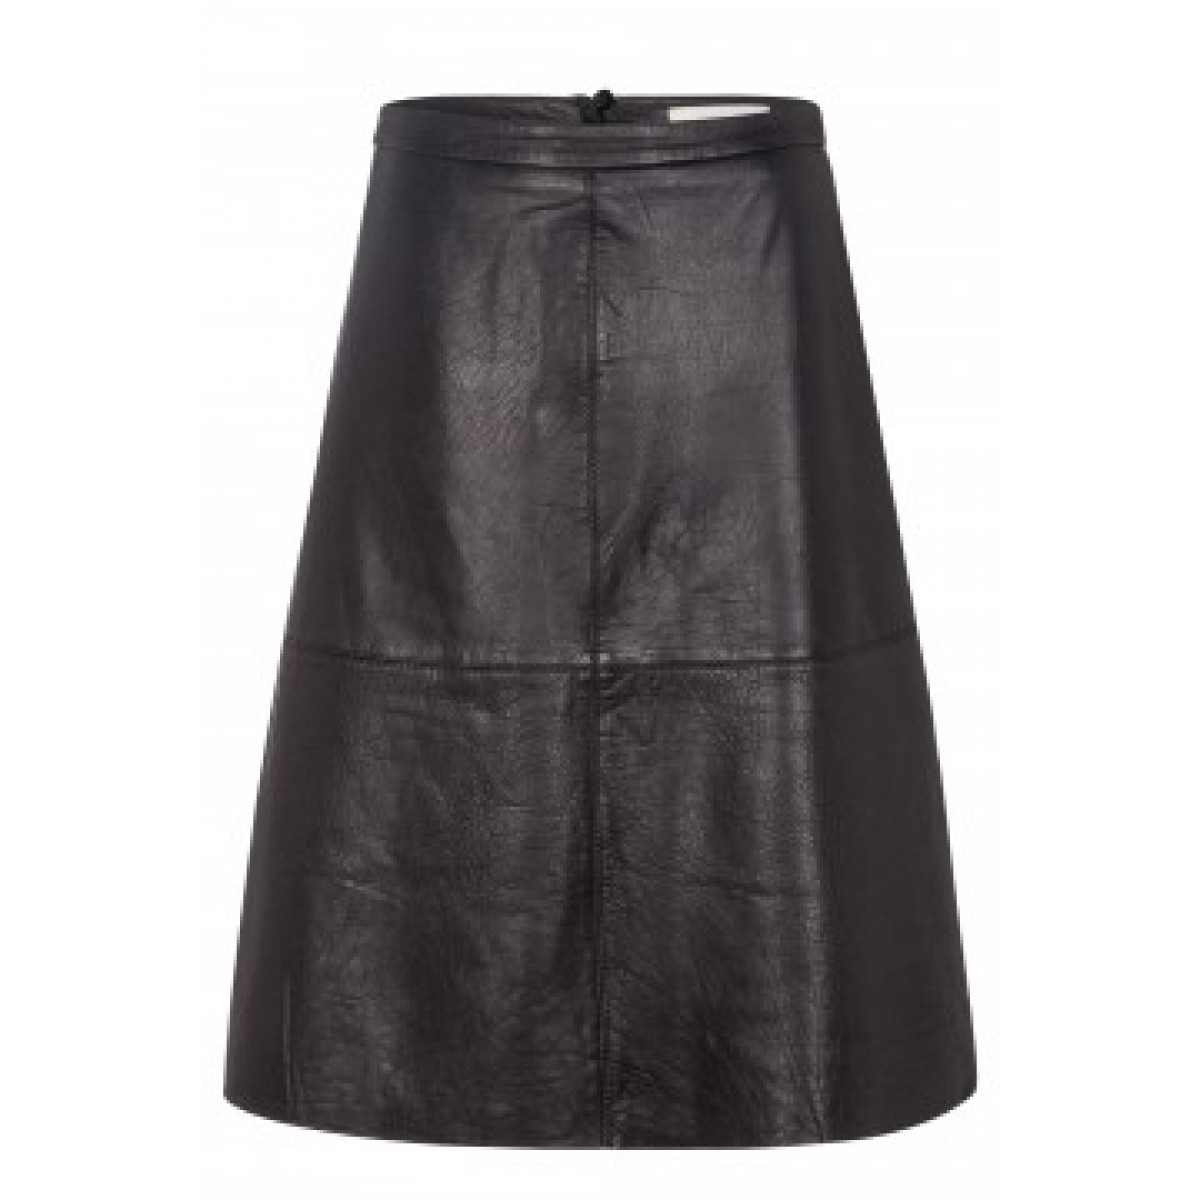 Oui 48675-9990 Skirt Black-35